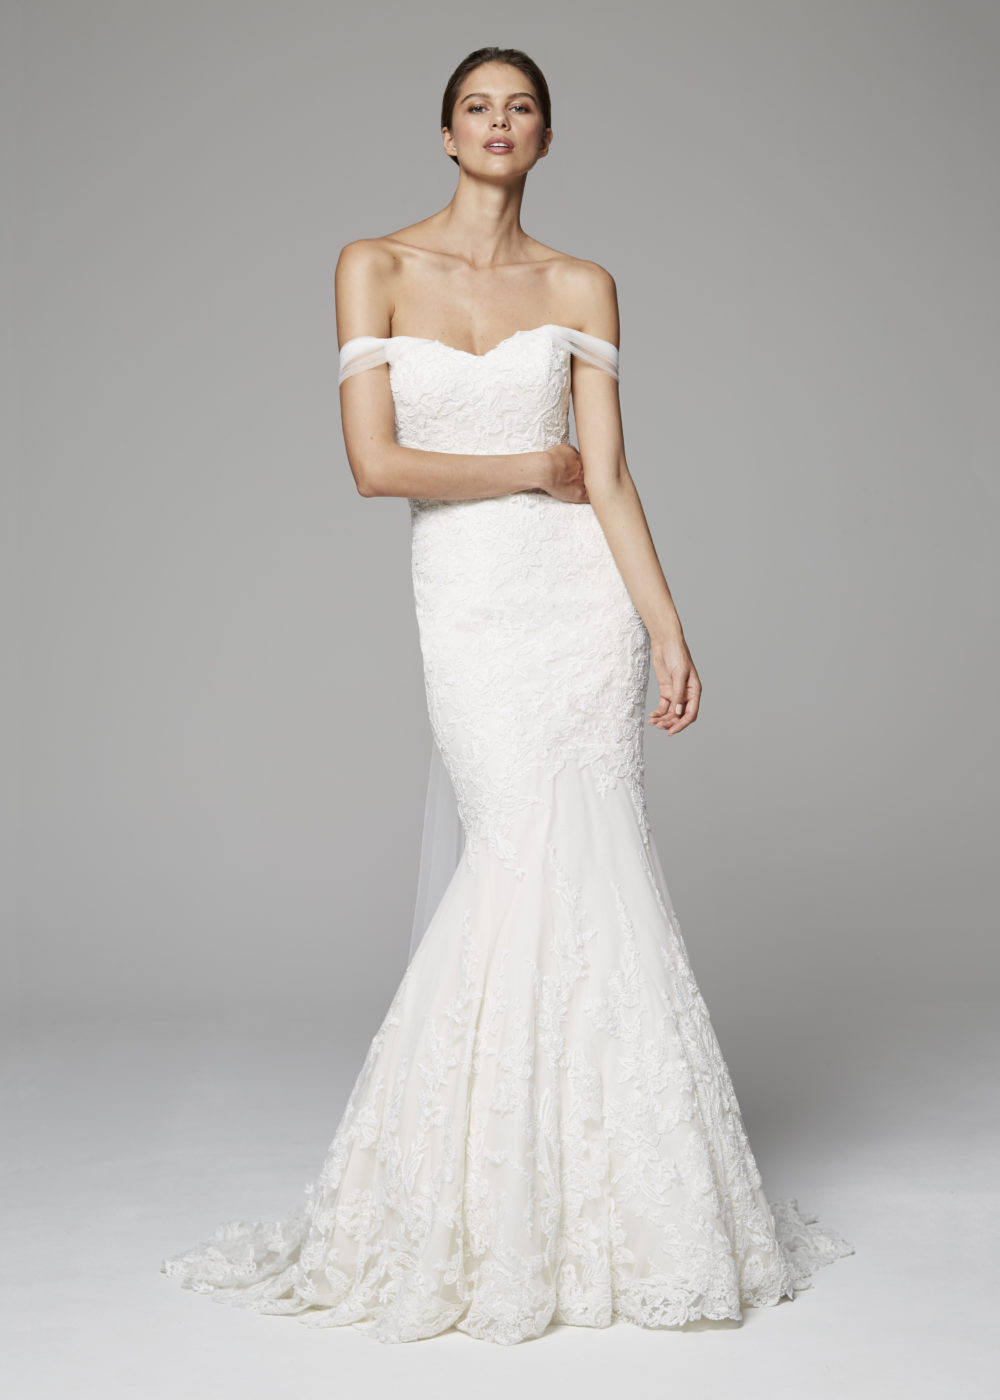 Refined mermaid gown of beaded embroidered lace with tulle off-the-shoulder drape extending to train.